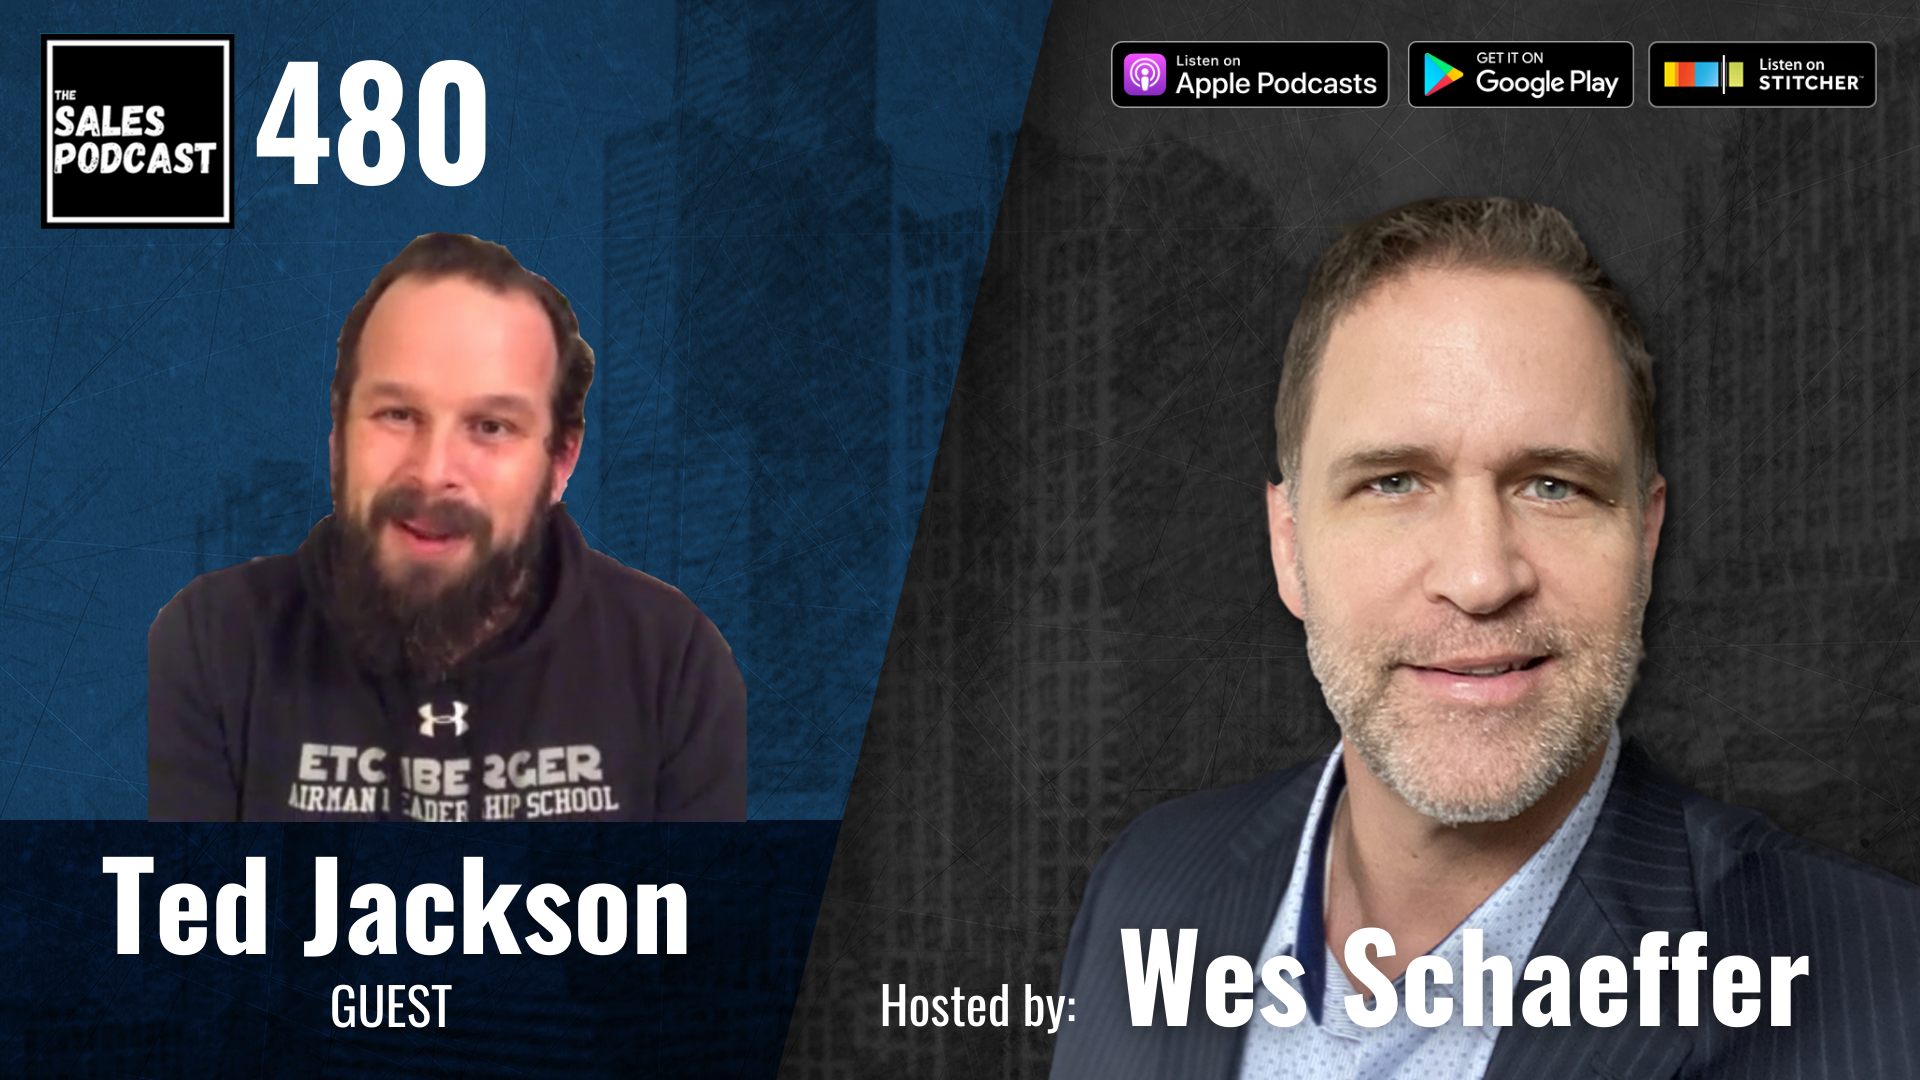 7 Marathons on 7 Continents In 7 Days, Meet Ted Jackson on The Sales Podcast with Wes Schaeffer, The Sales Whisperer®